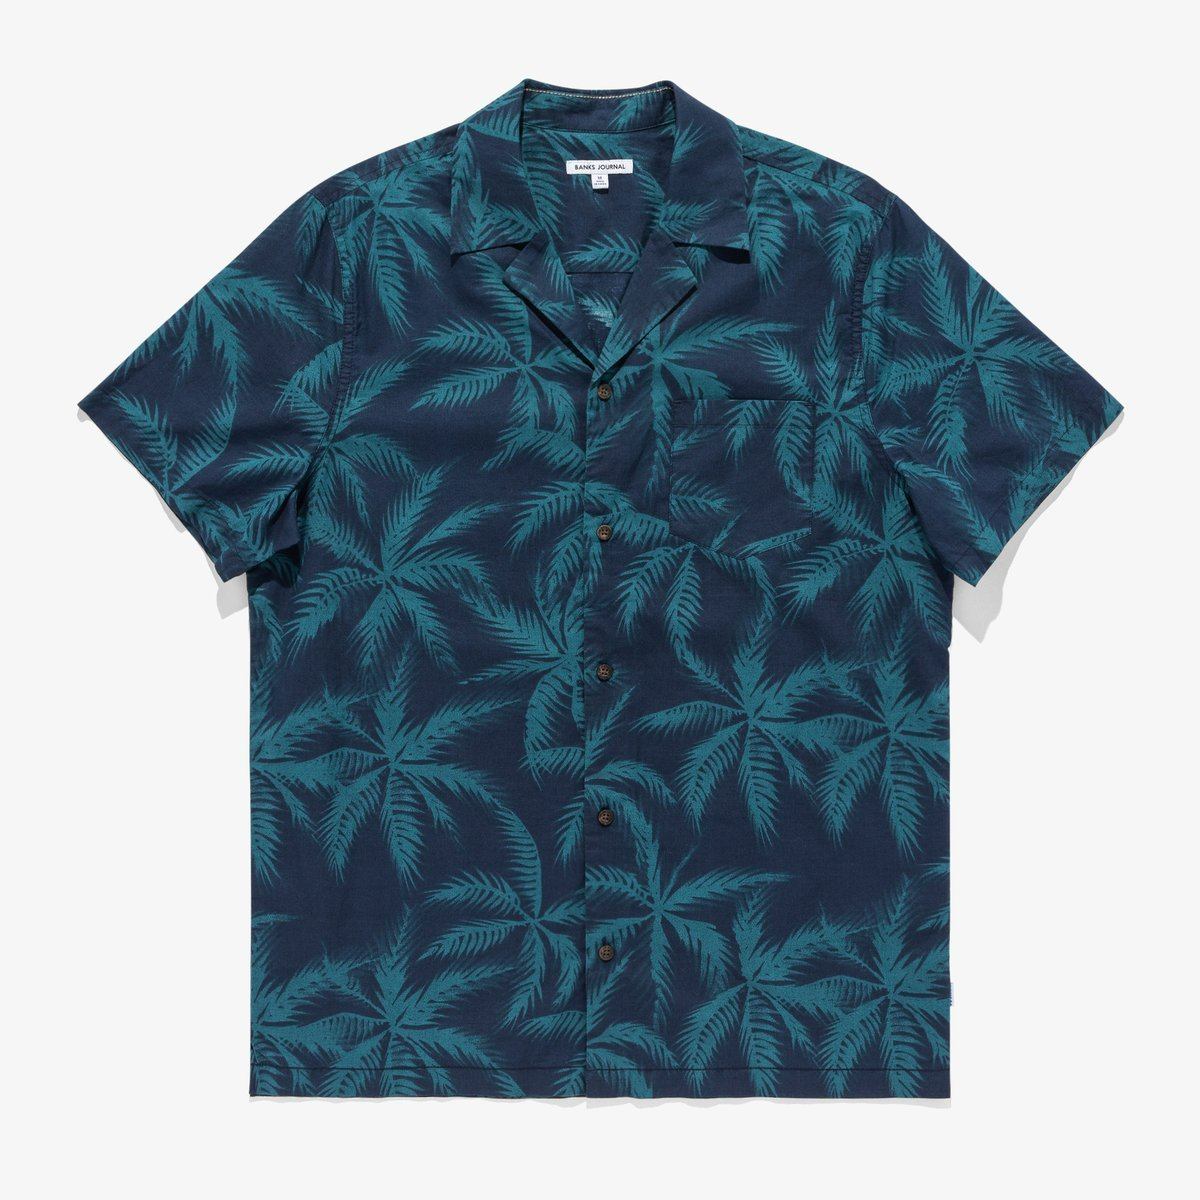 Banks Journal CUBA - S/S SHIRT / Neighborhood Goods